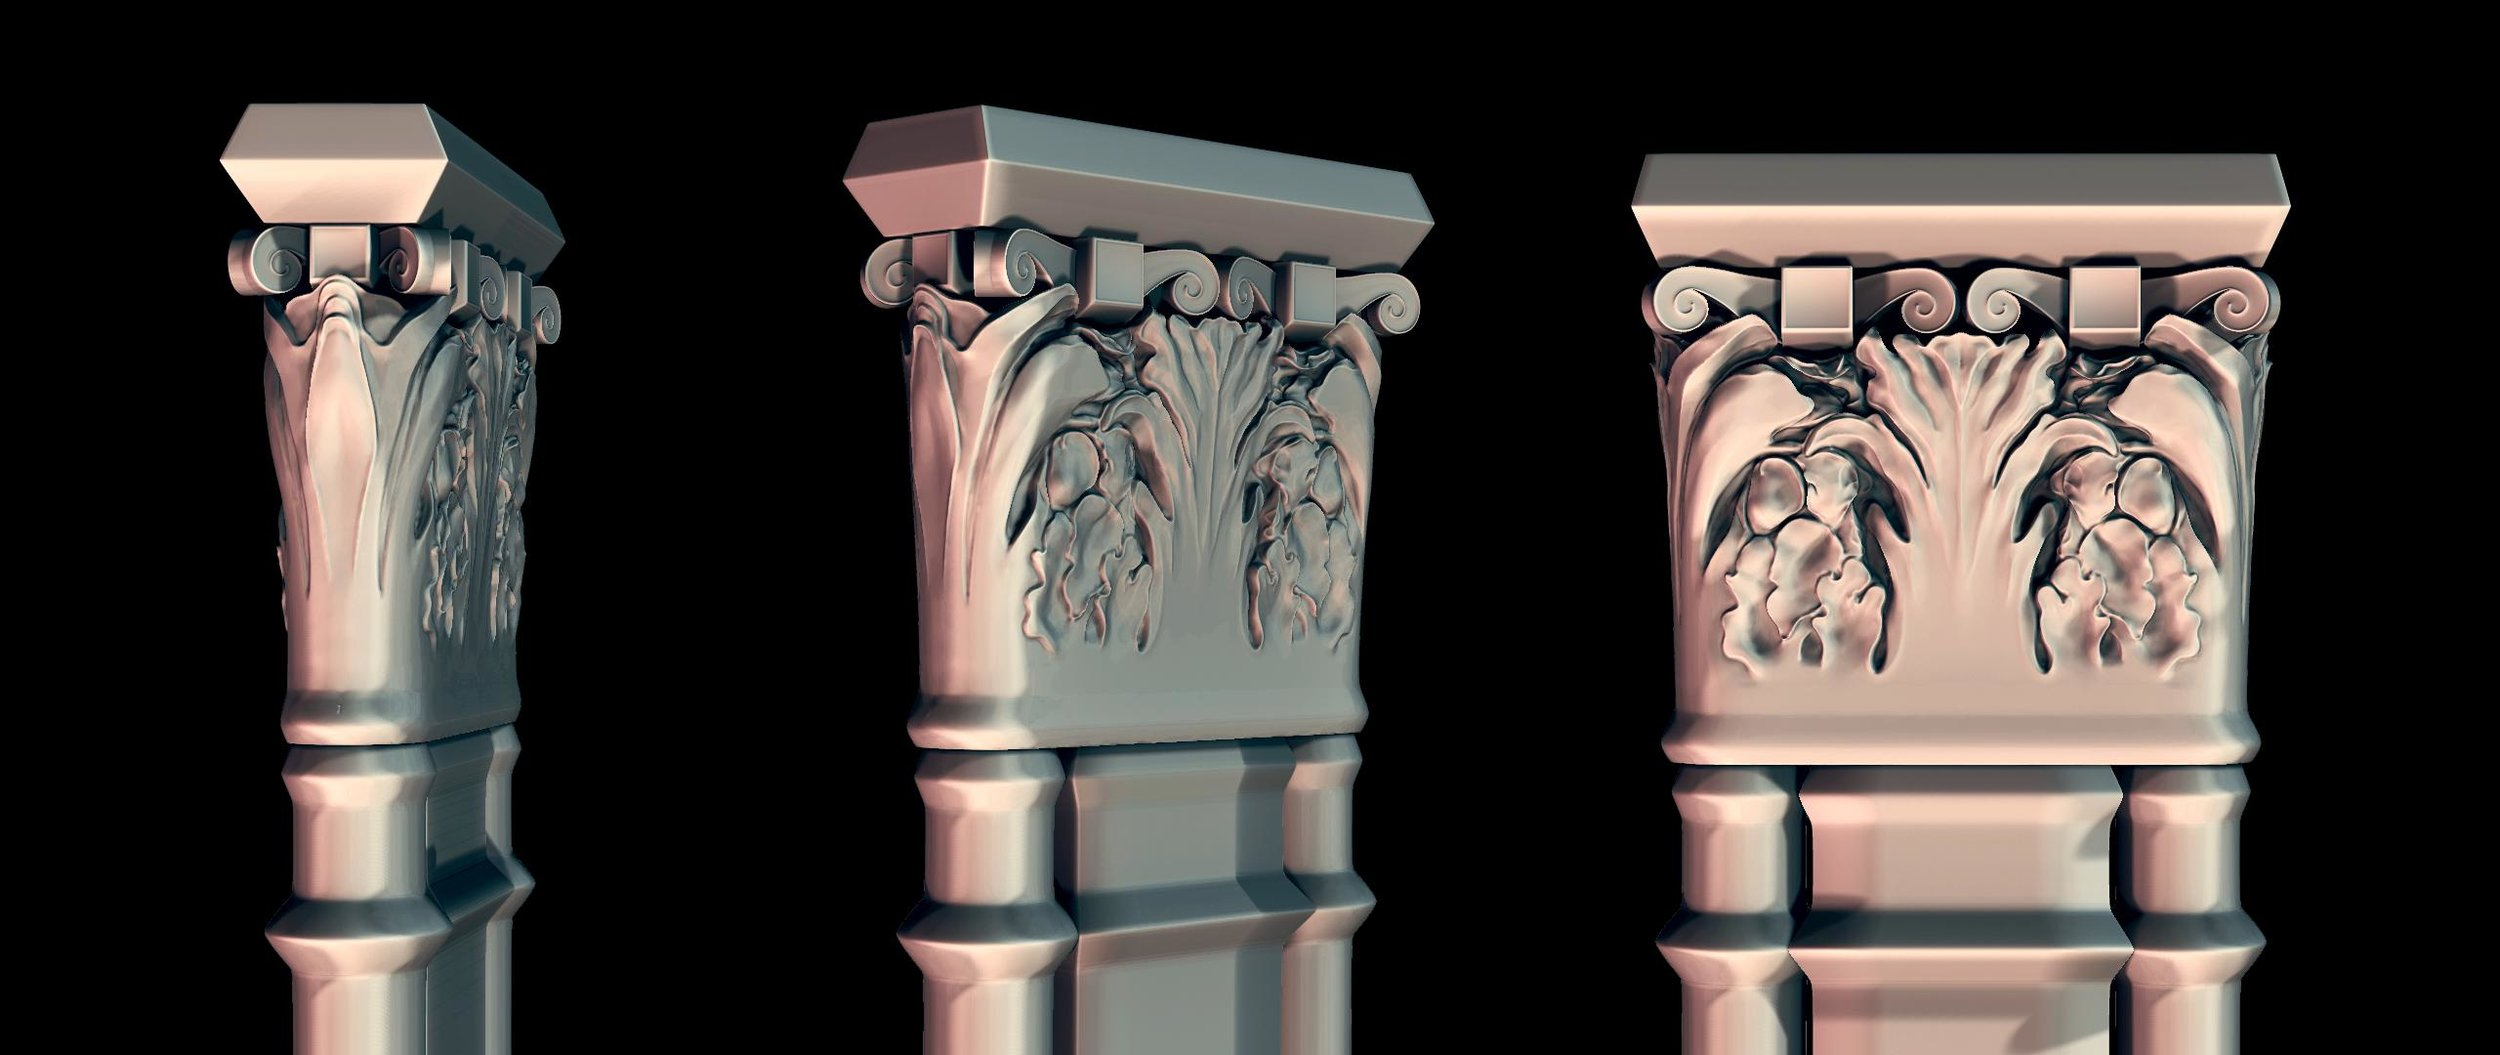 ornate pillar